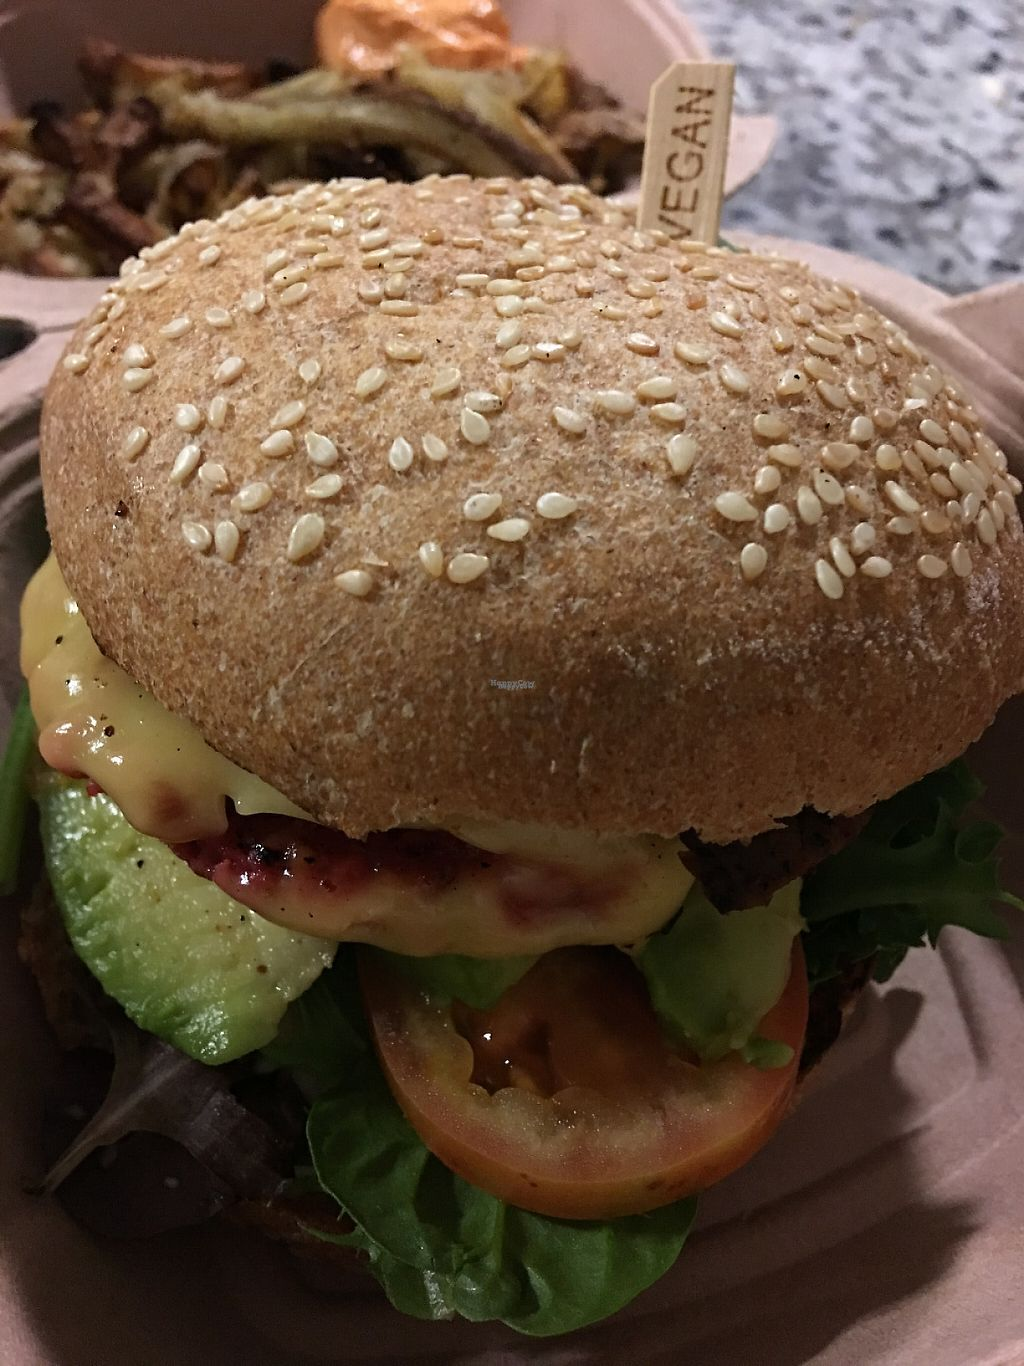 """Photo of CLOSED: Choices Cafe  by <a href=""""/members/profile/myra975"""">myra975</a> <br/>Cold Veggie Burger <br/> March 19, 2017  - <a href='/contact/abuse/image/44707/238474'>Report</a>"""